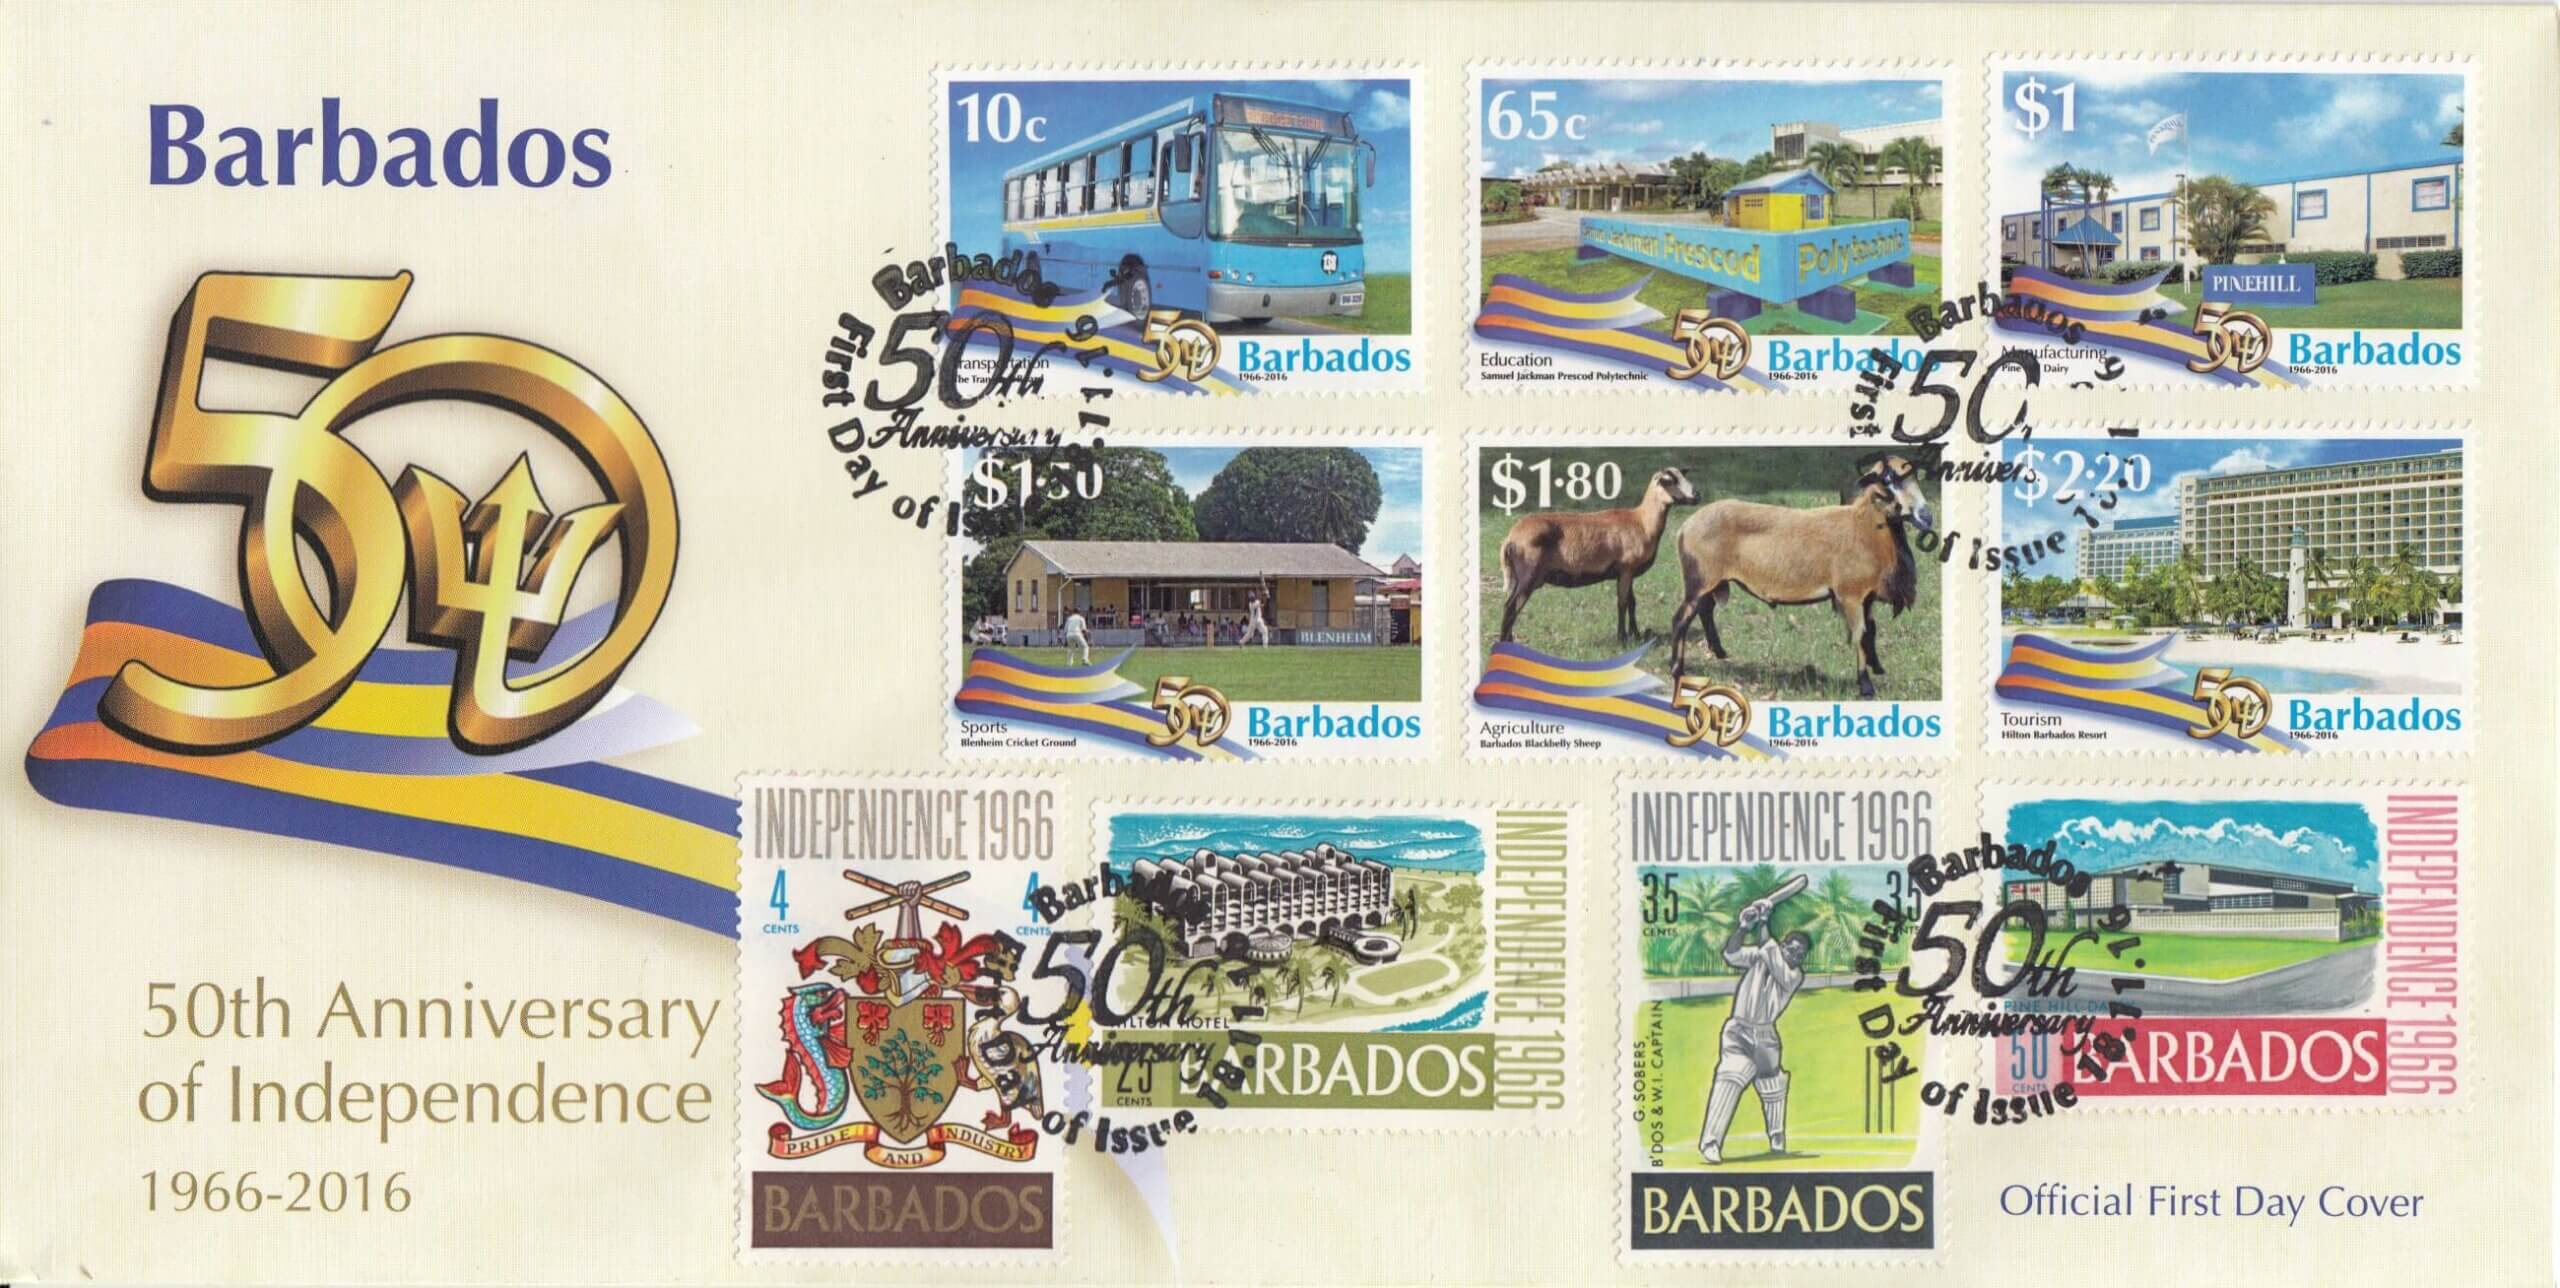 Barbados 50th Anniversary of Independence double dated First Day Cover